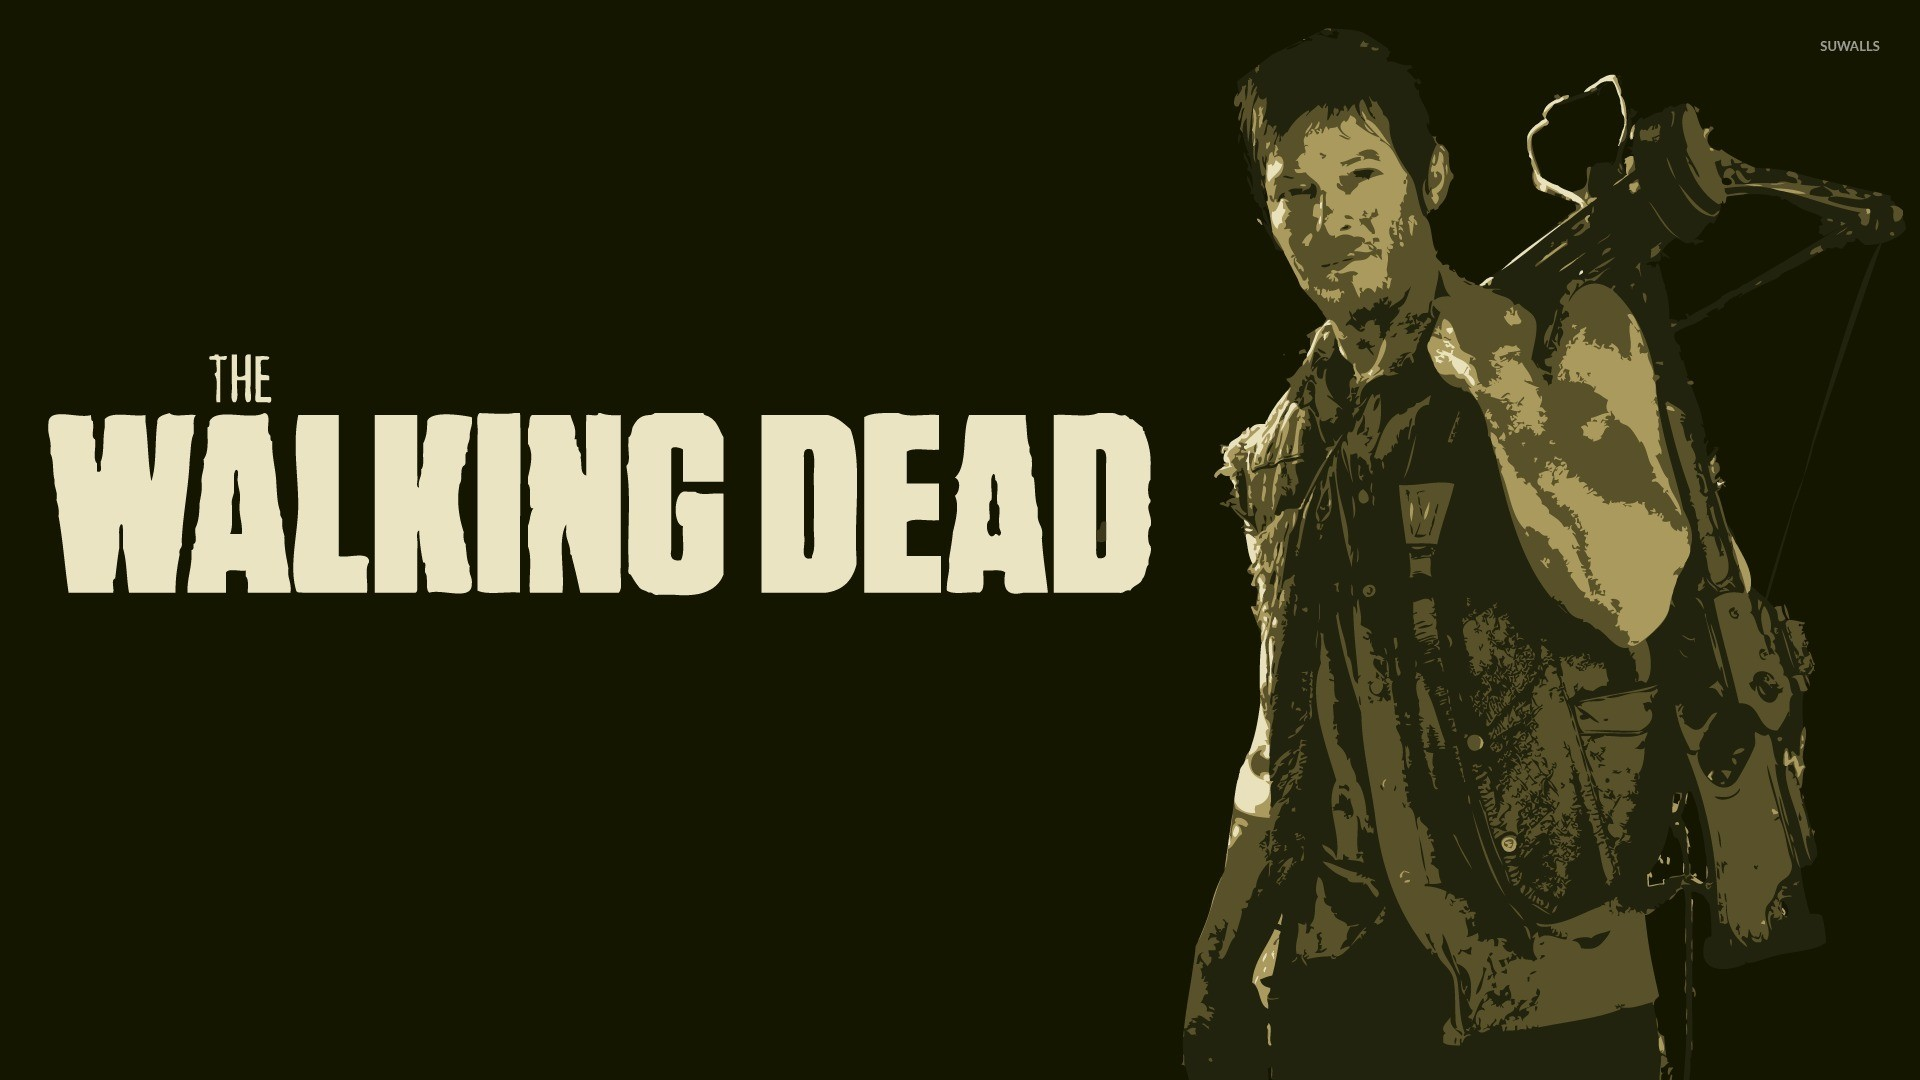 1920x1080 Images For The Walking Dead Comic Wallpaper